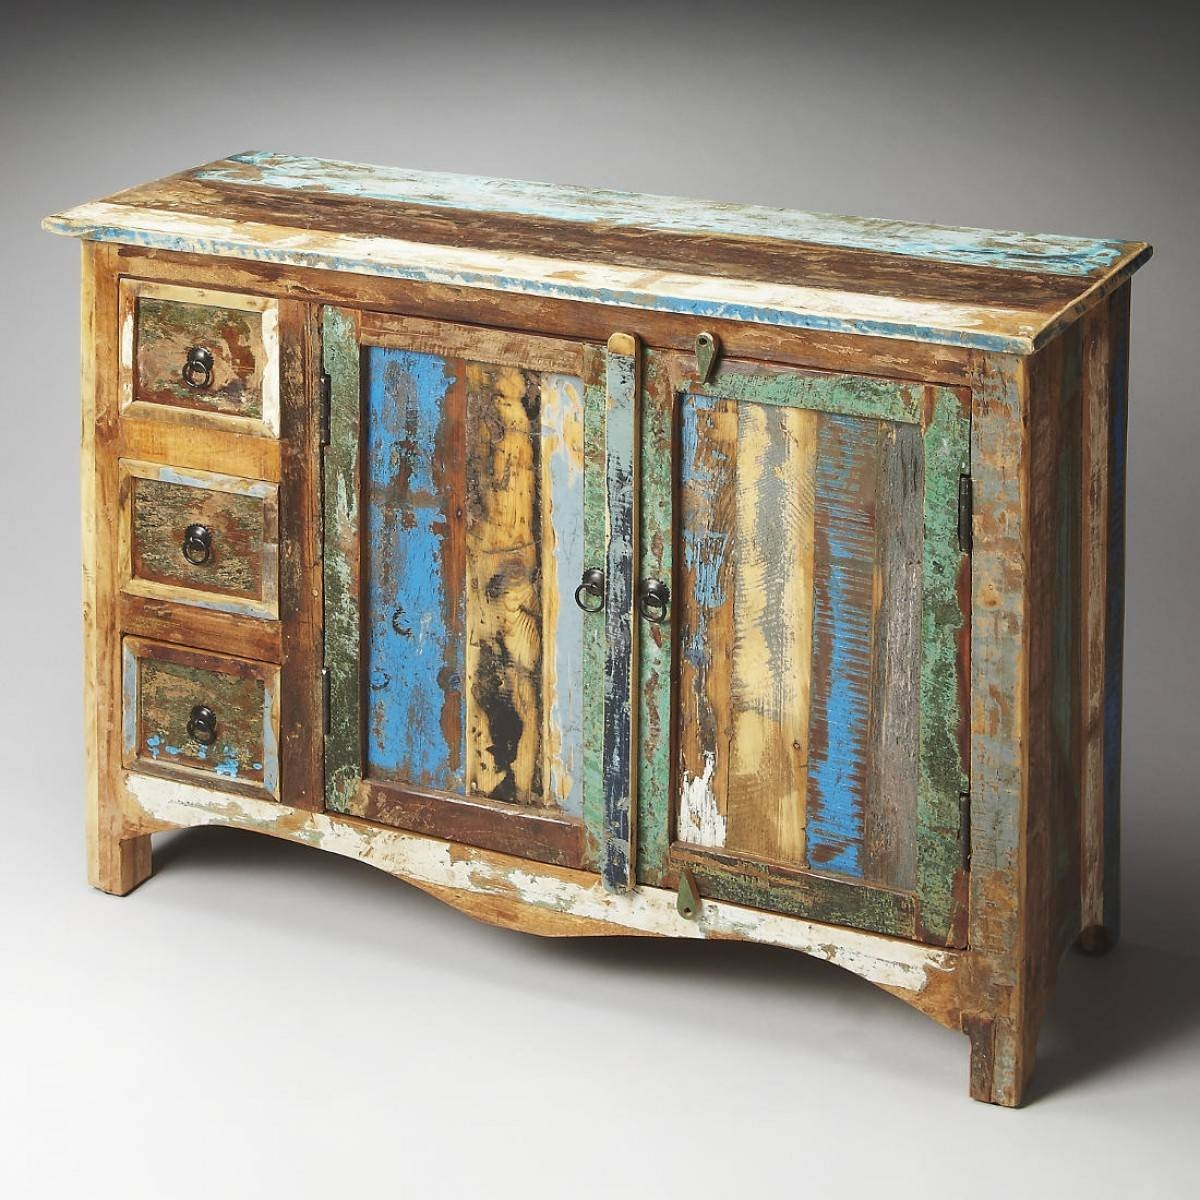 Dining Room Furniture Rustic 20 Photo Of Rustic Sideboards